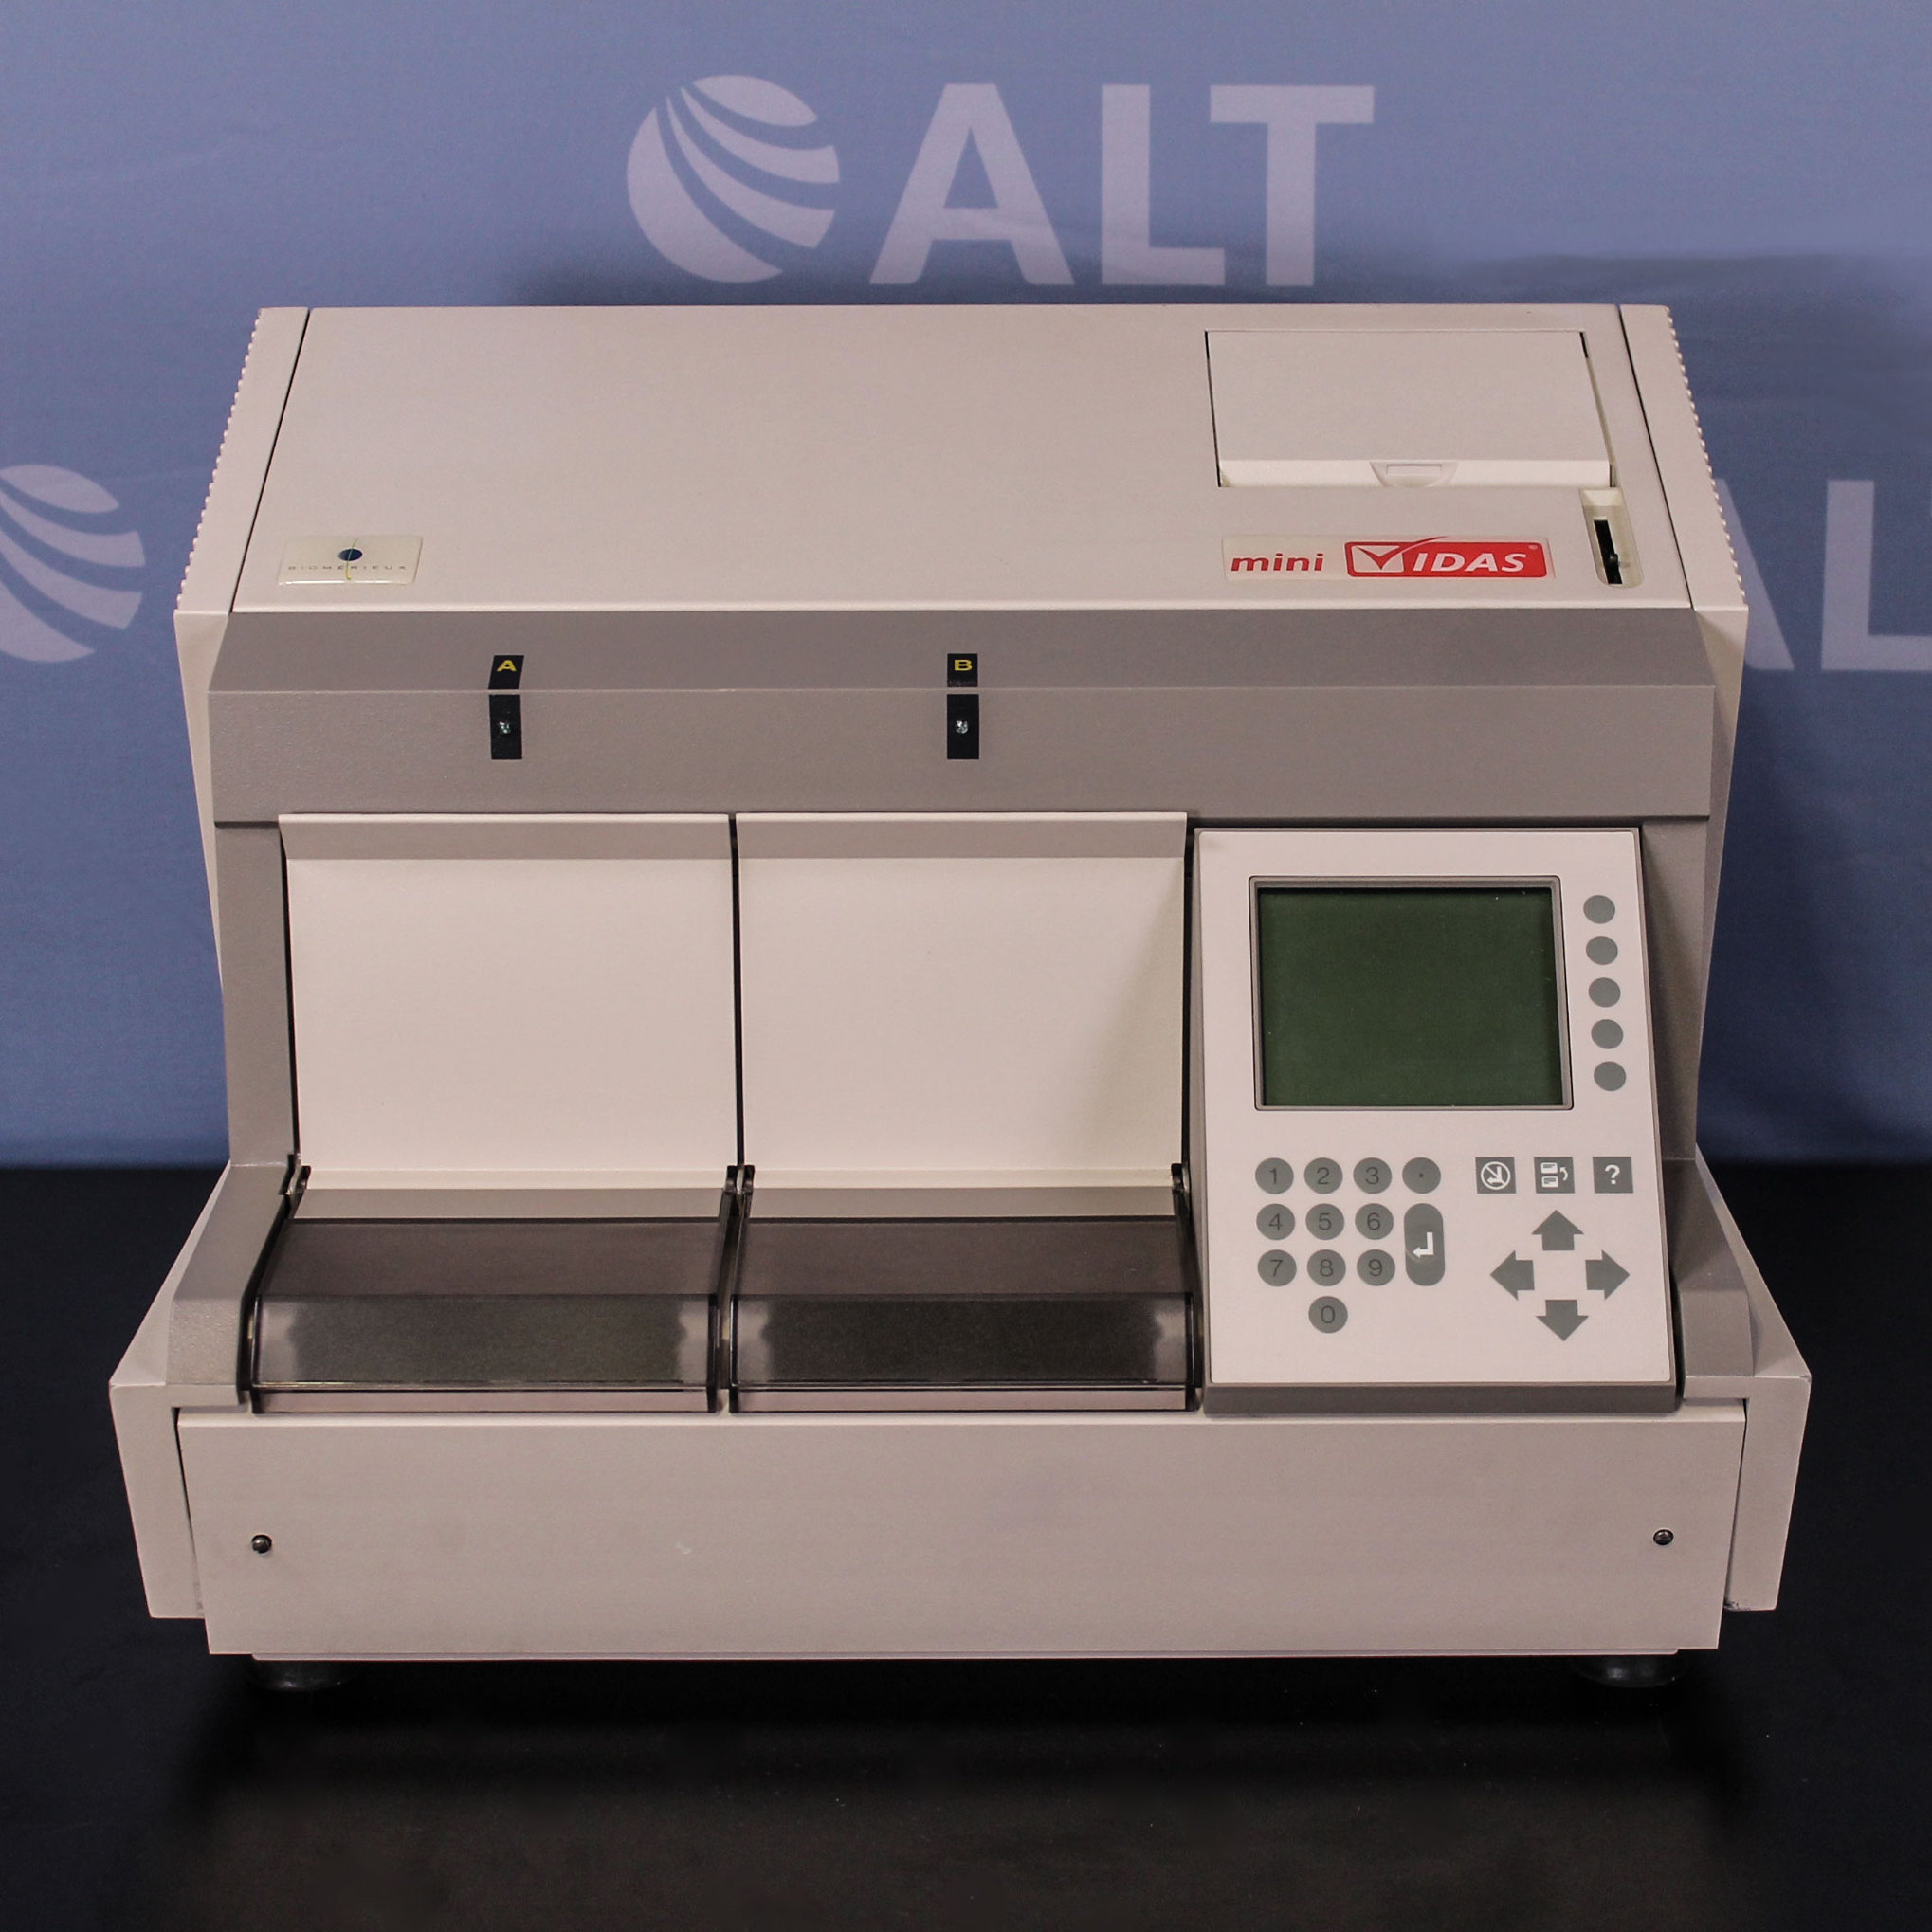 BioMerieux mini VIDAS Automated Immunoassay Analyzer Image